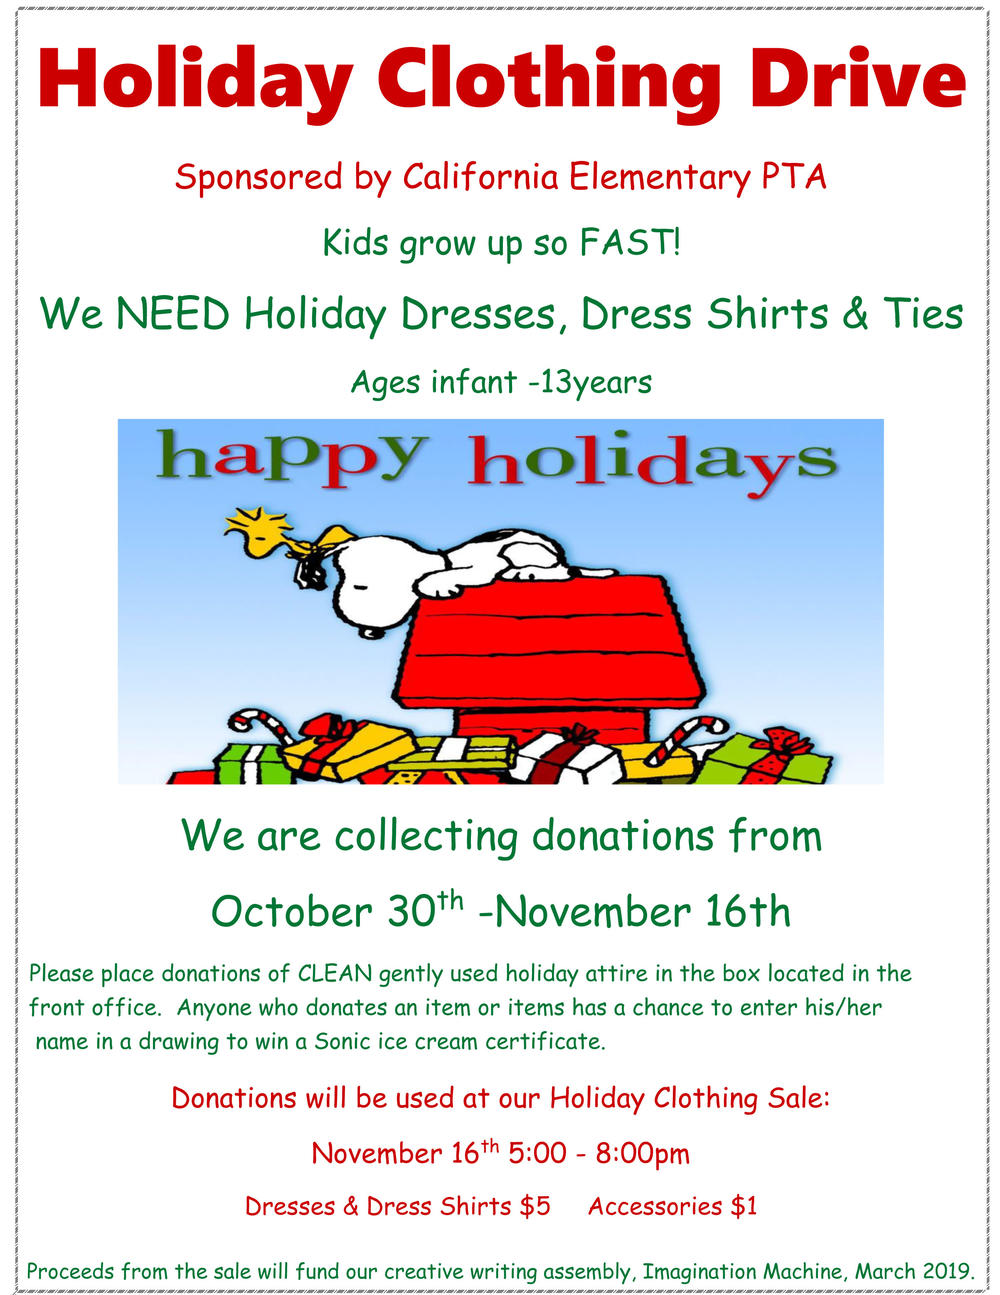 Holiday Clothing Drive flyer